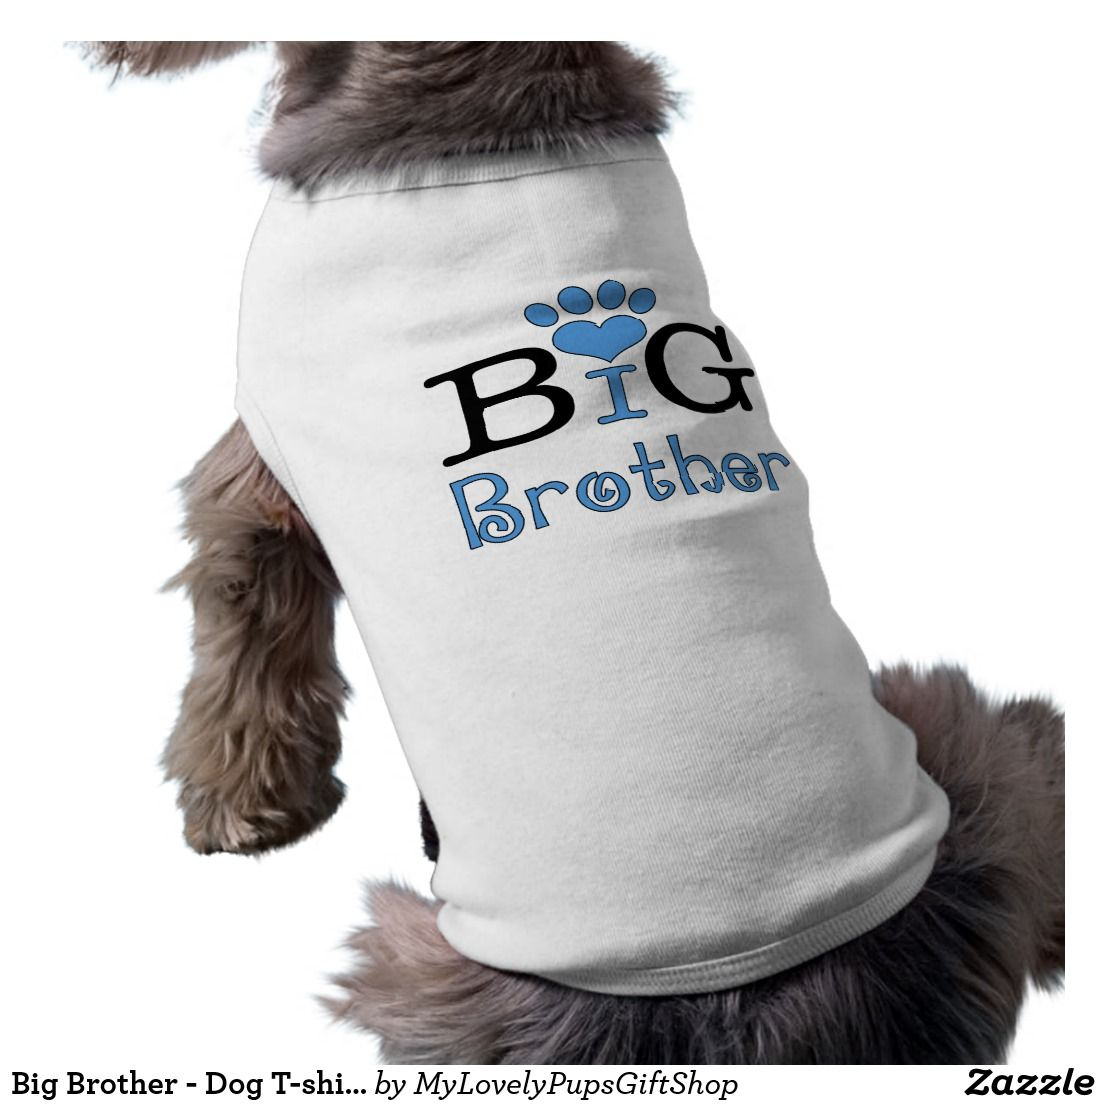 c06e66151 Big Brother - Dog T-shirt | Doggie apparel and accessories ...